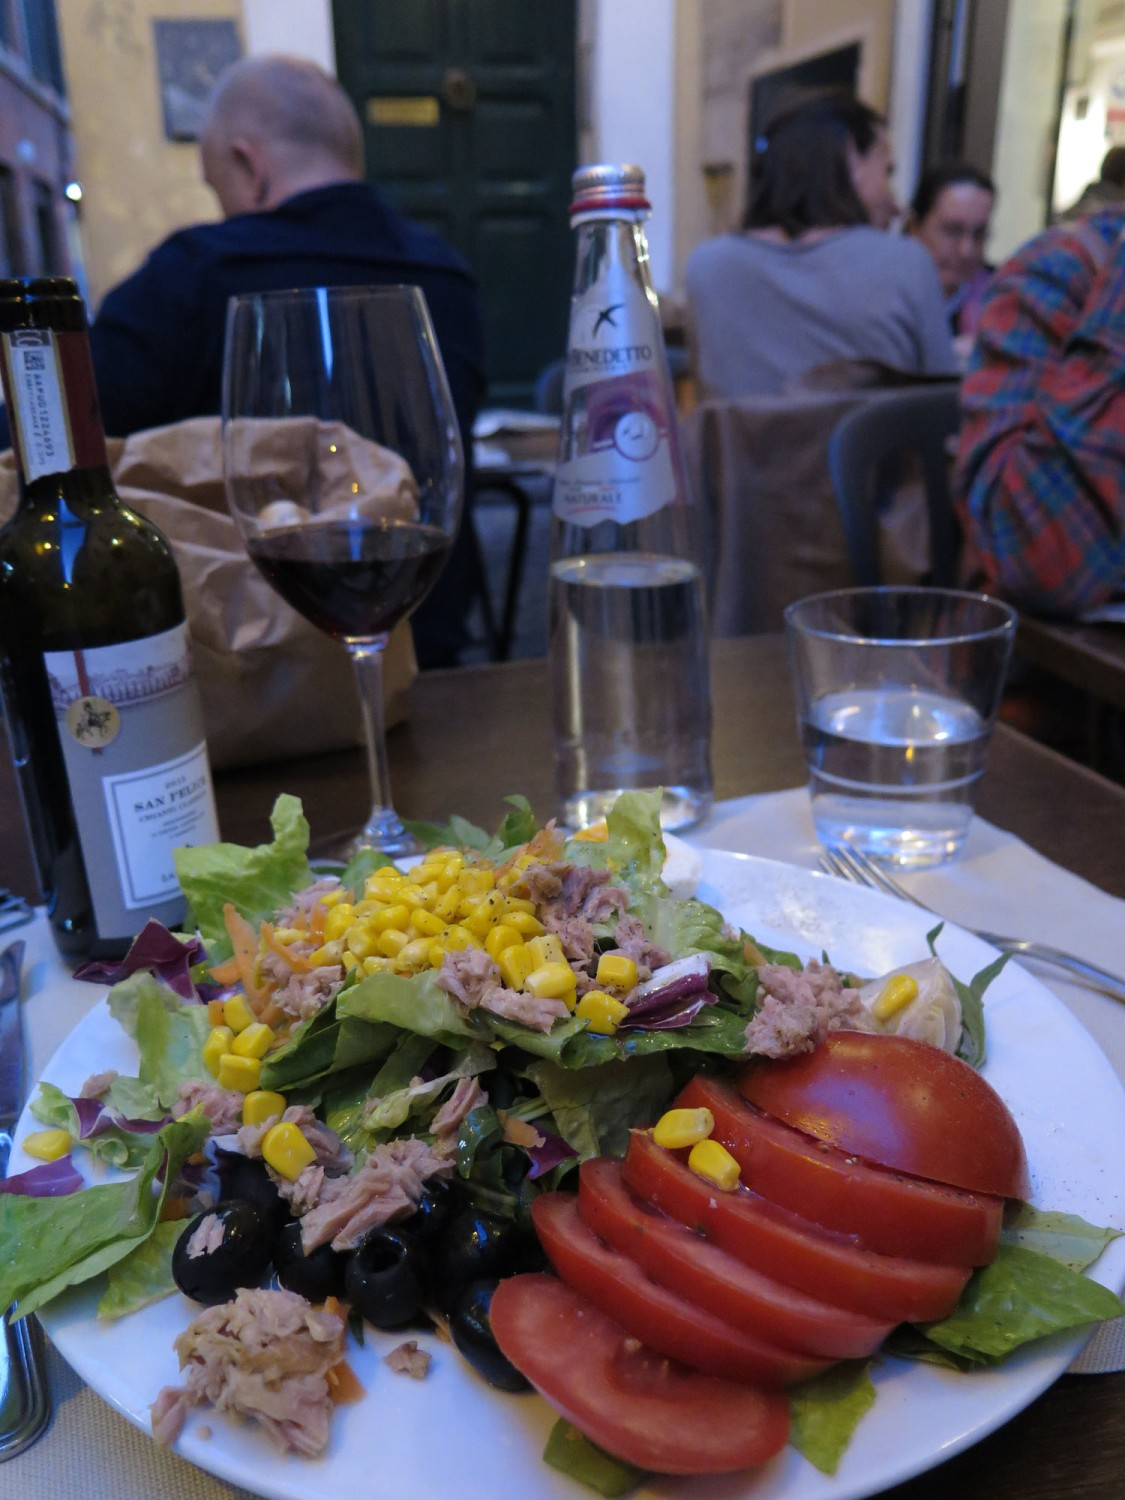 Italy-Rome-Food-And-Drink-Salad